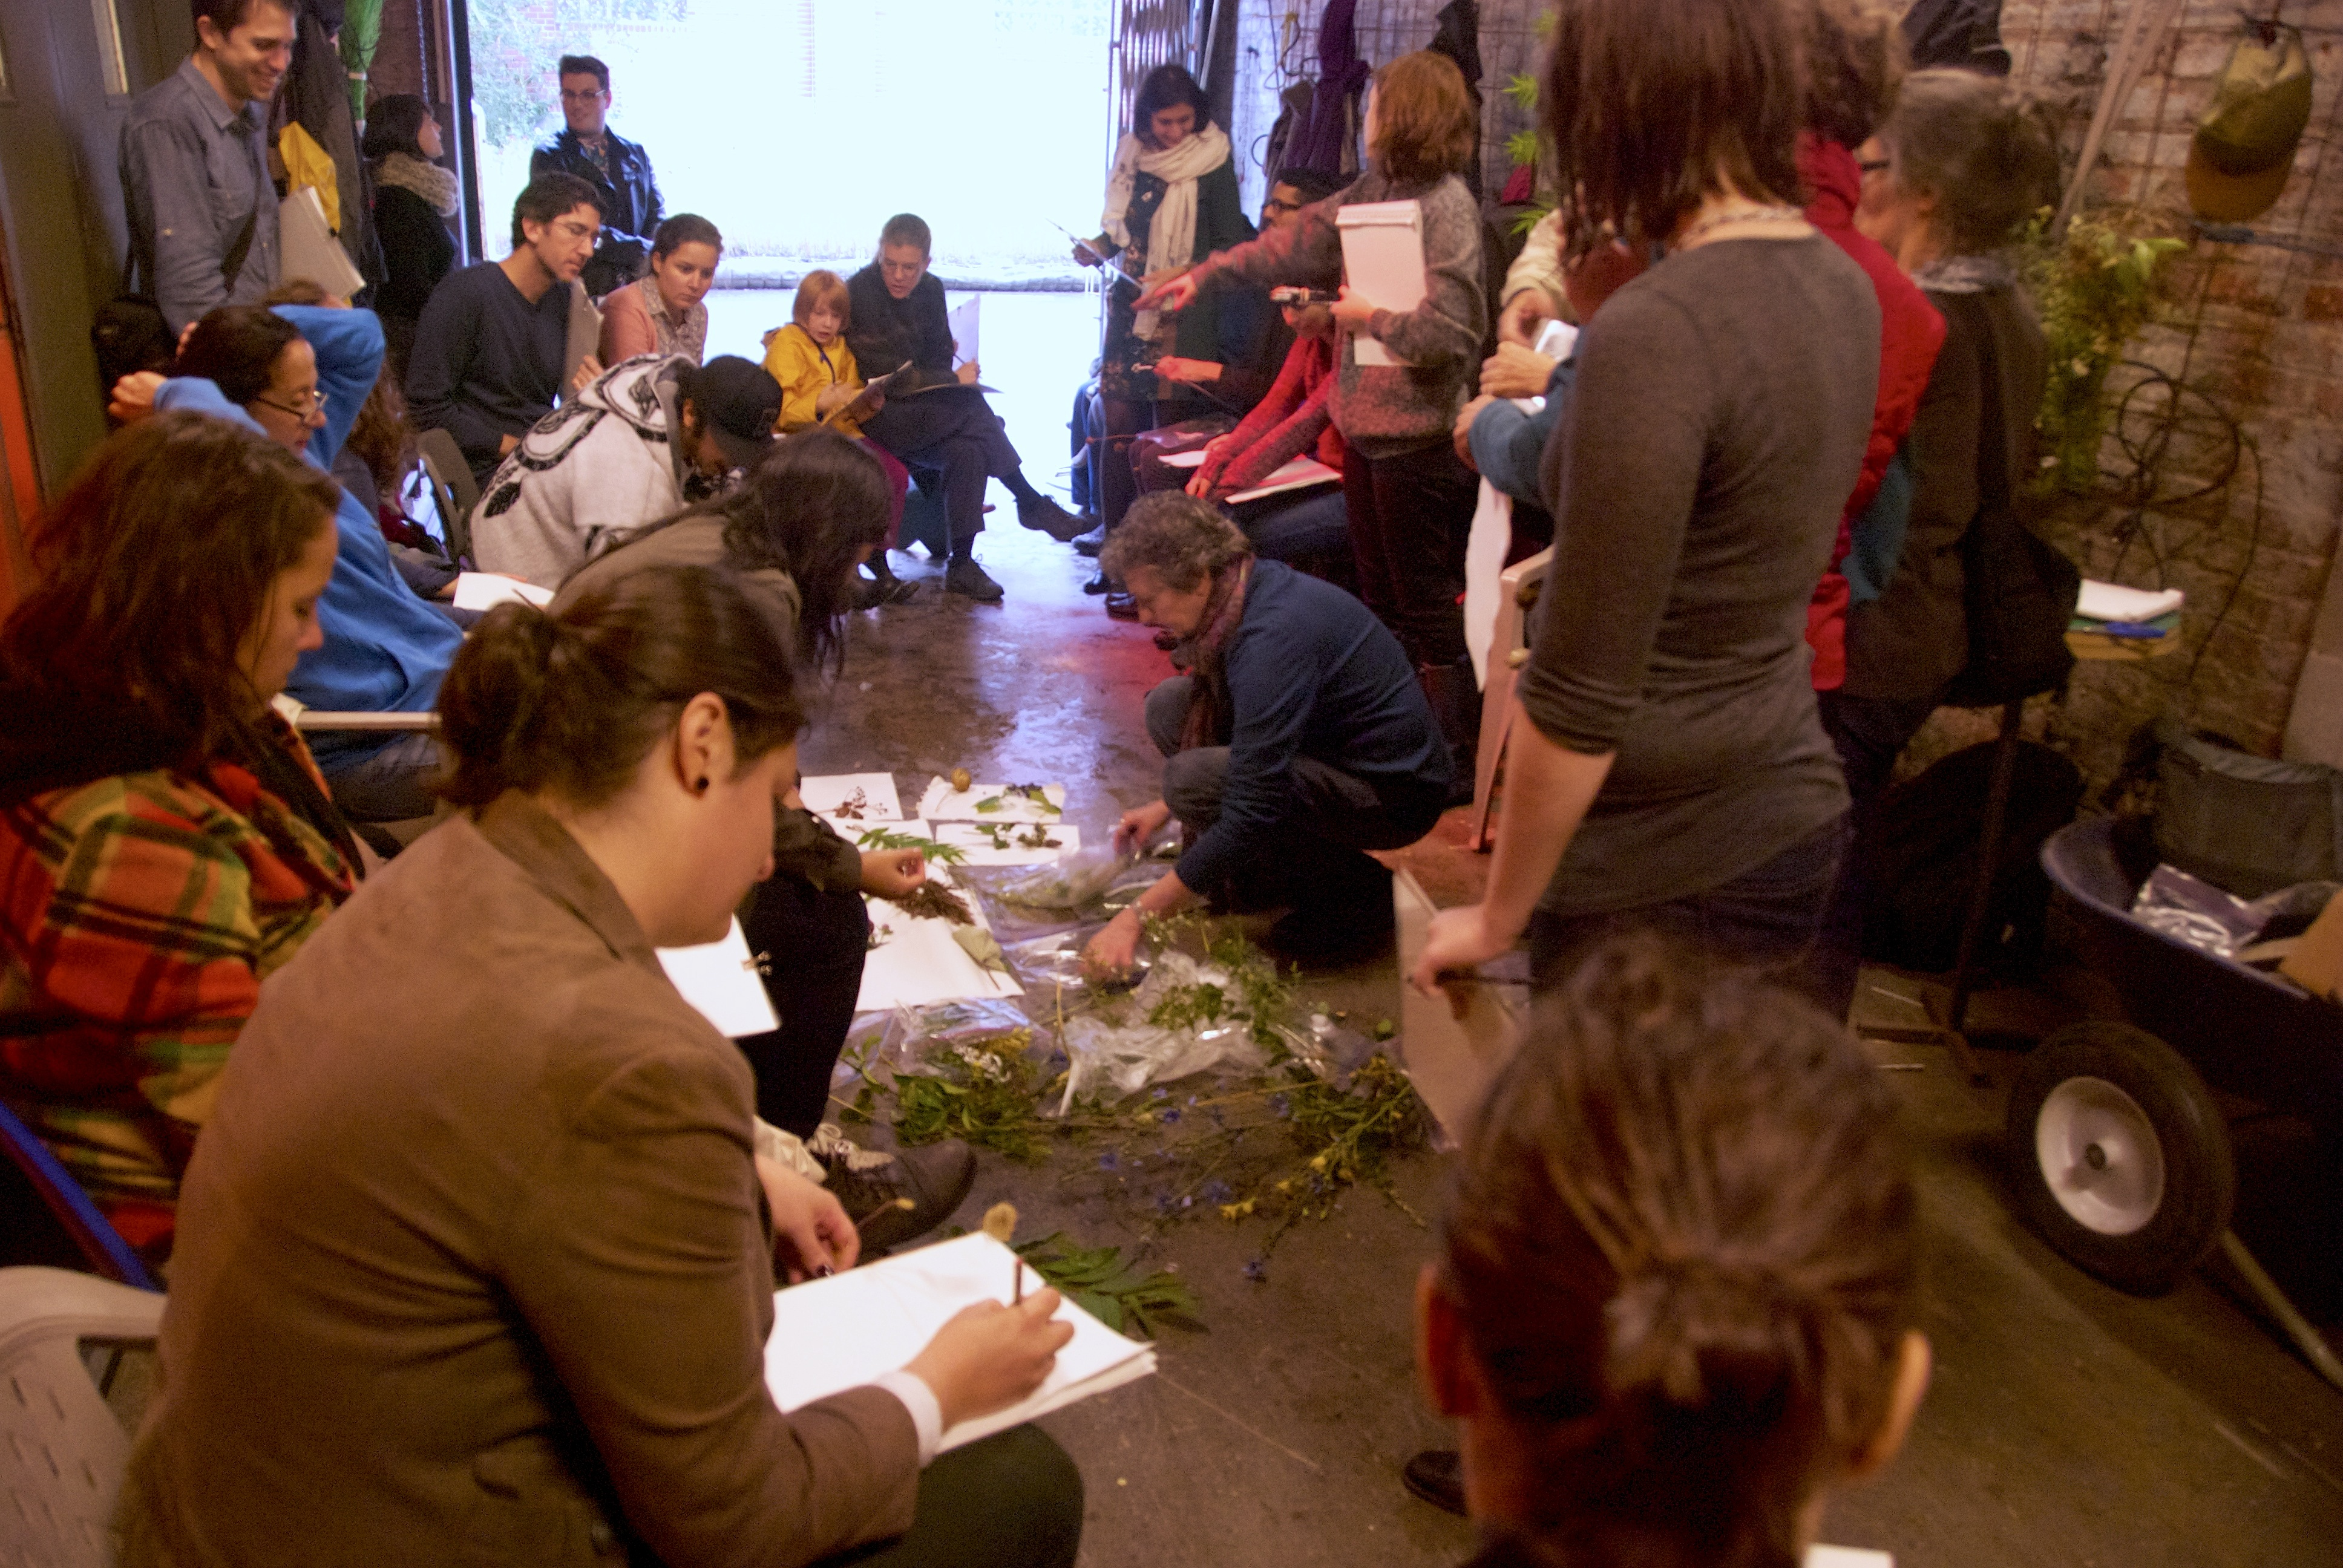 [Image 24 - Jessie Hart leads the drawing phase of the Urban greening lab, 13 September 2014. Photo: S. Janssen]